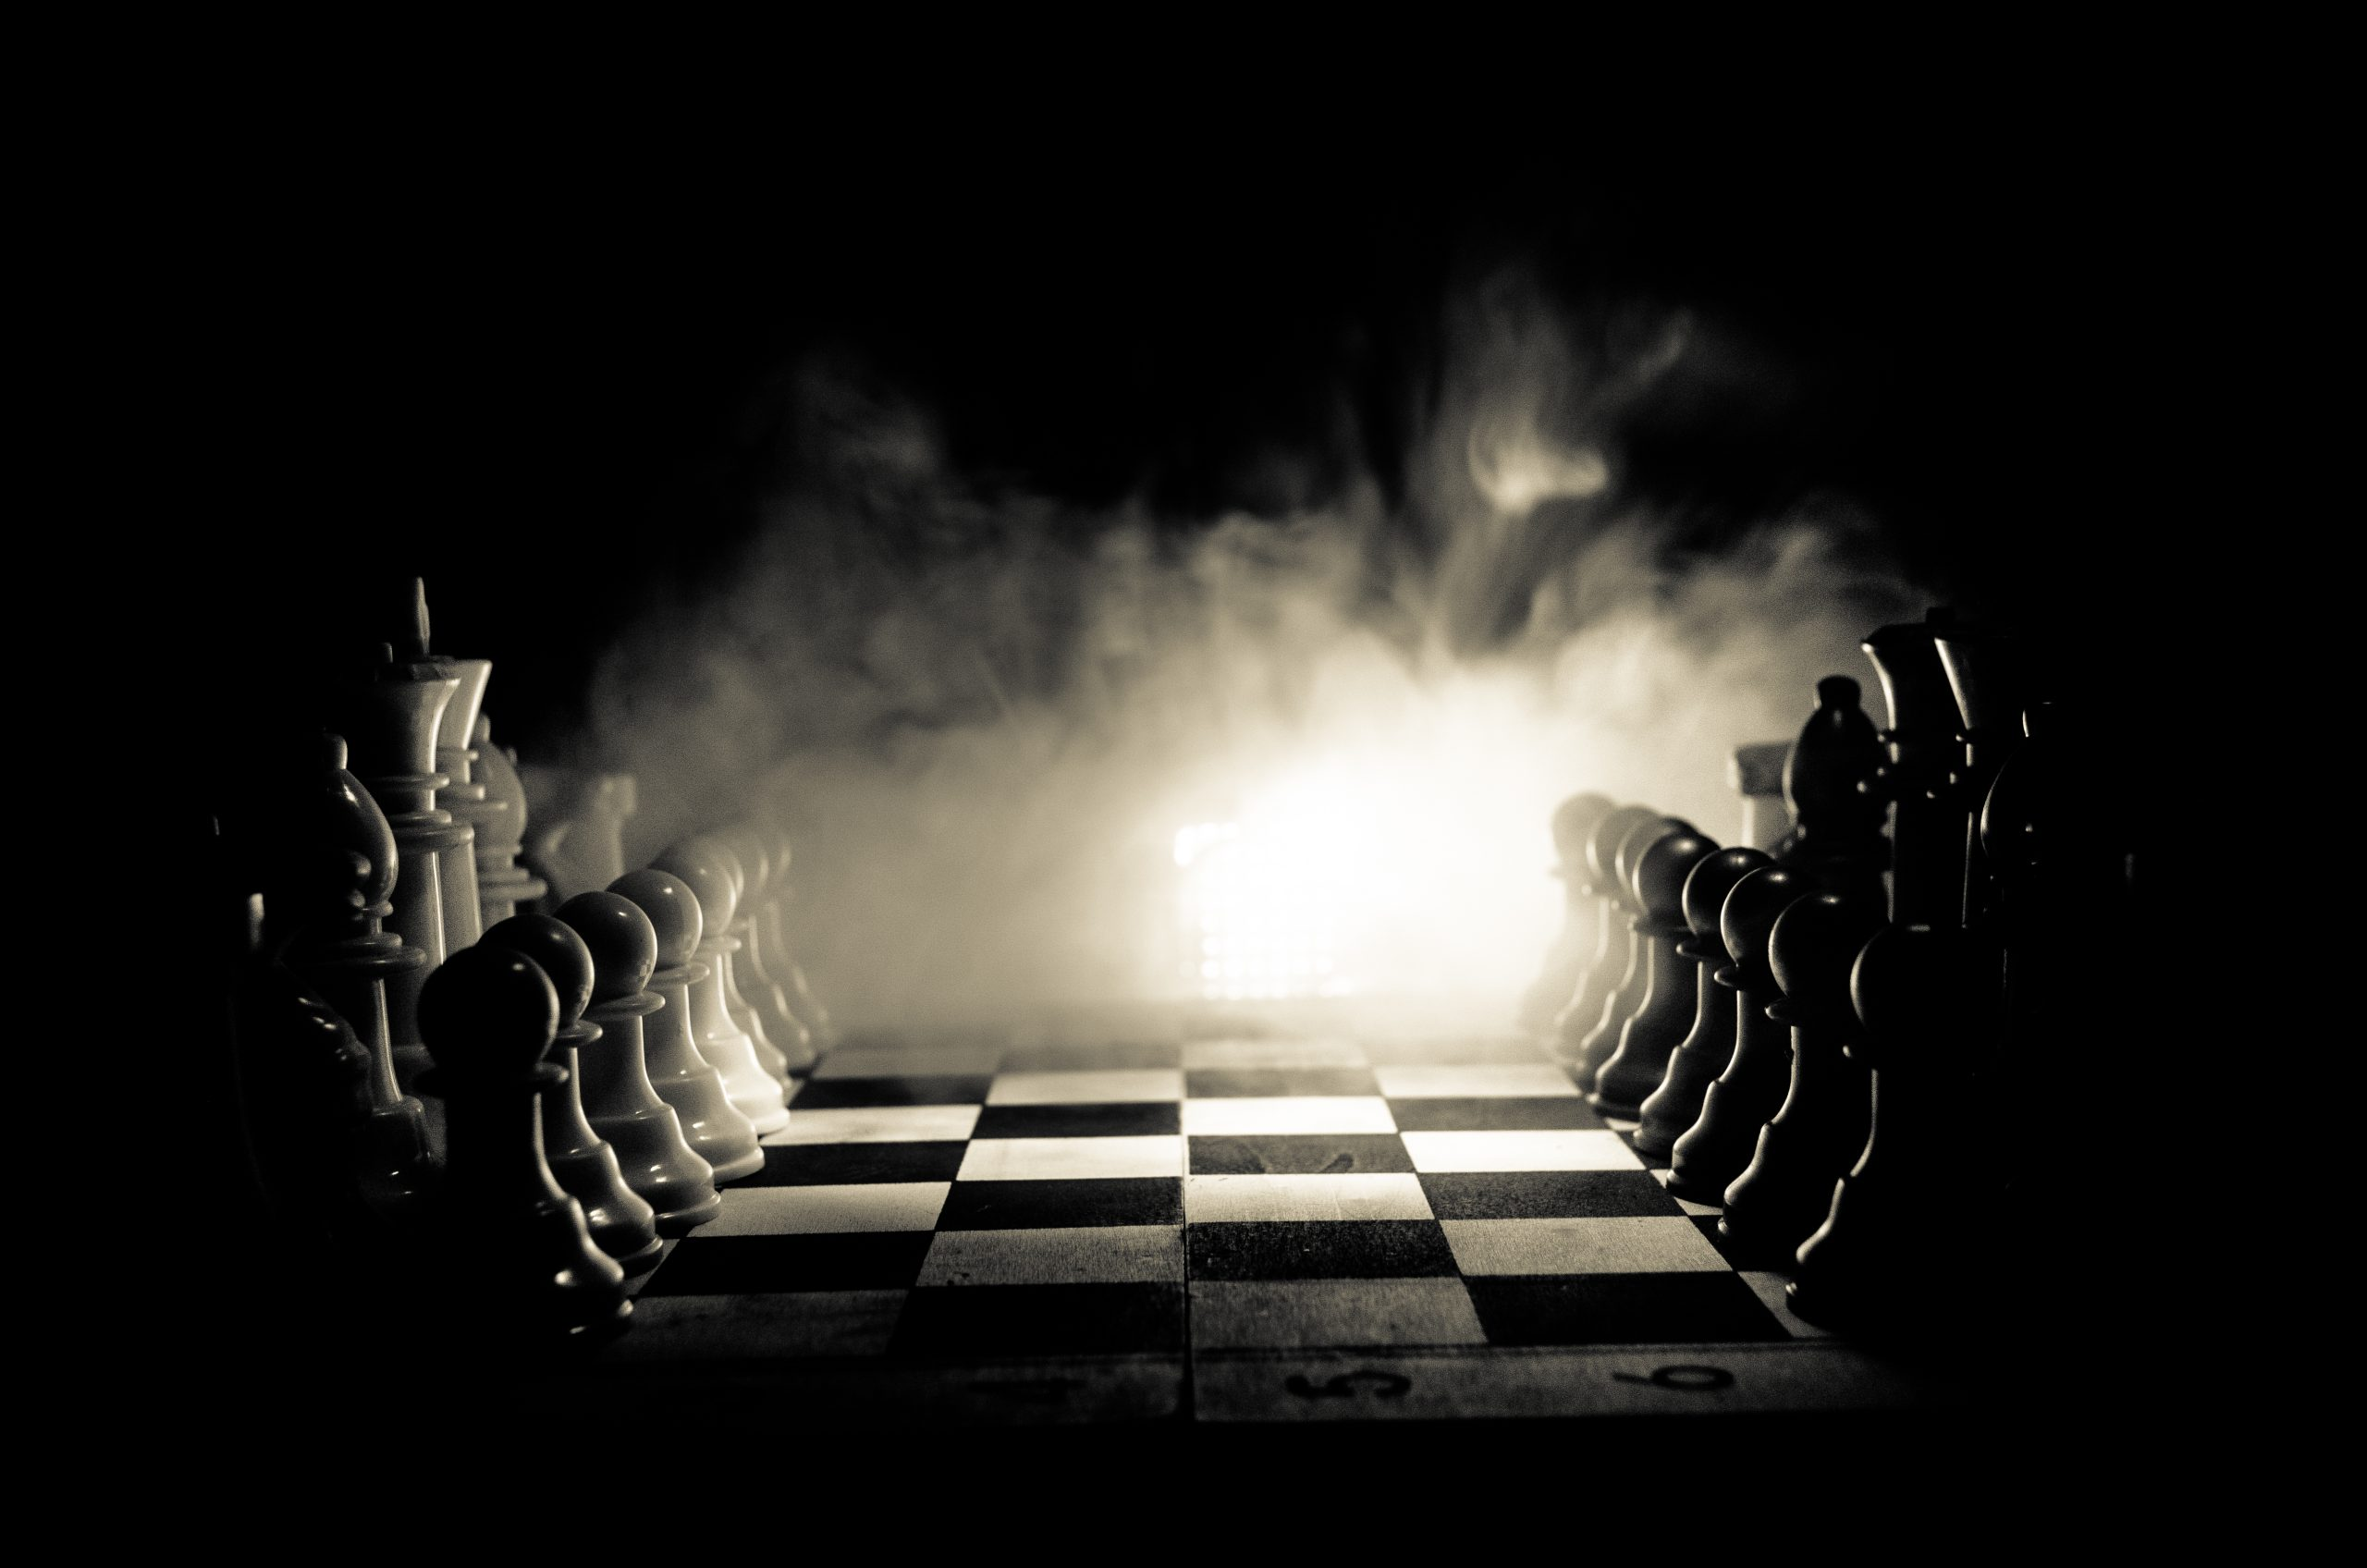 Making the Transformation Chessboard Visible So We Can Make Better Moves